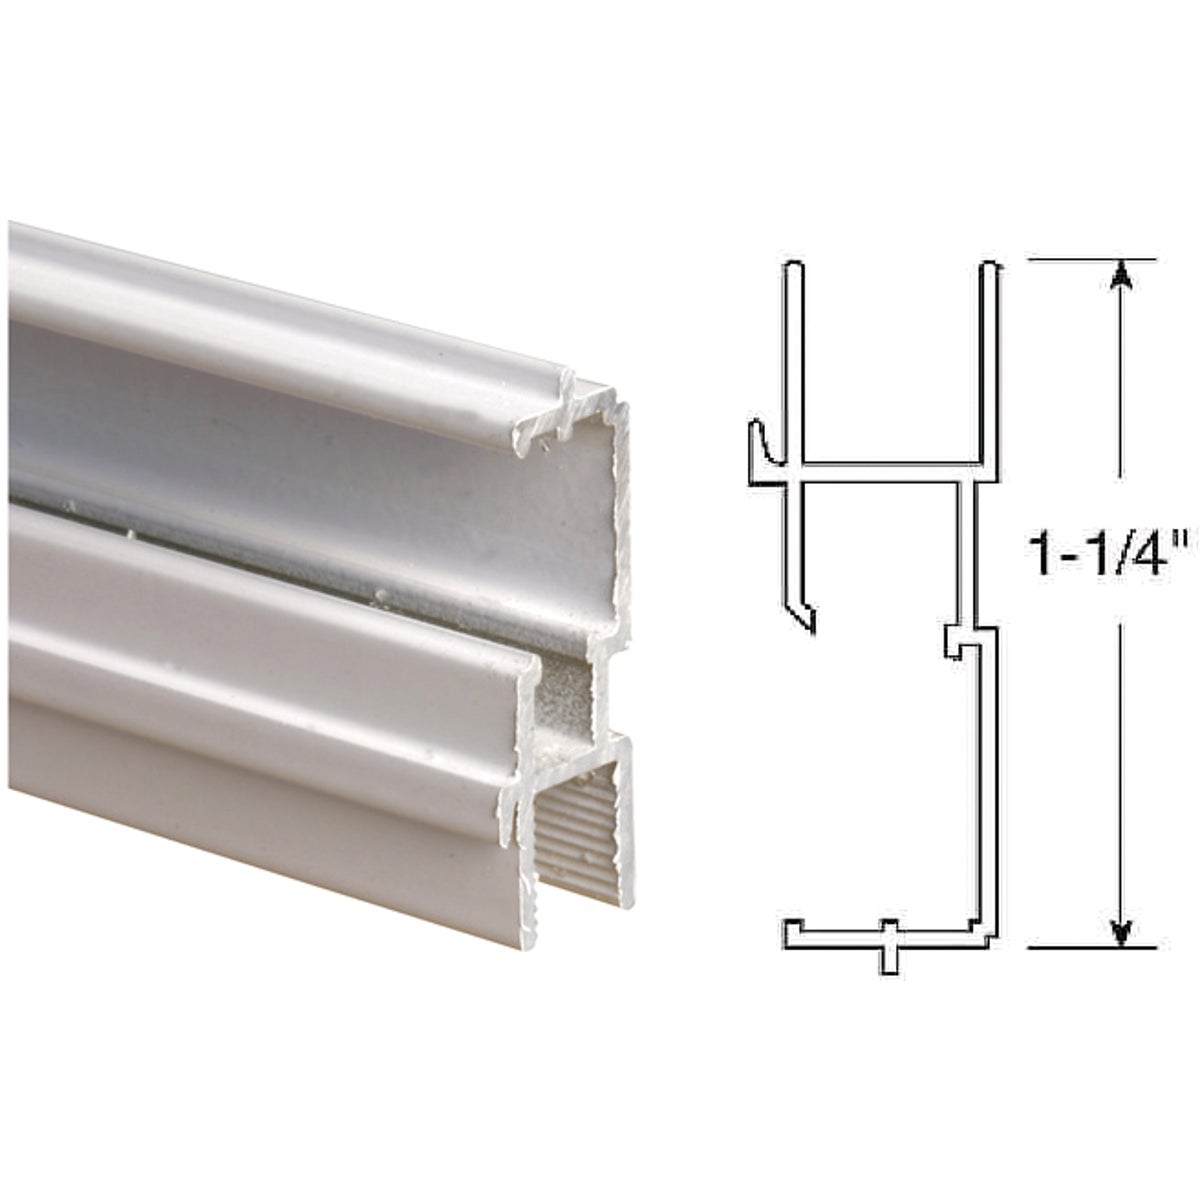 1-1/4WHT BTM TT WN FRAME - PL14194 by Prime Line Products